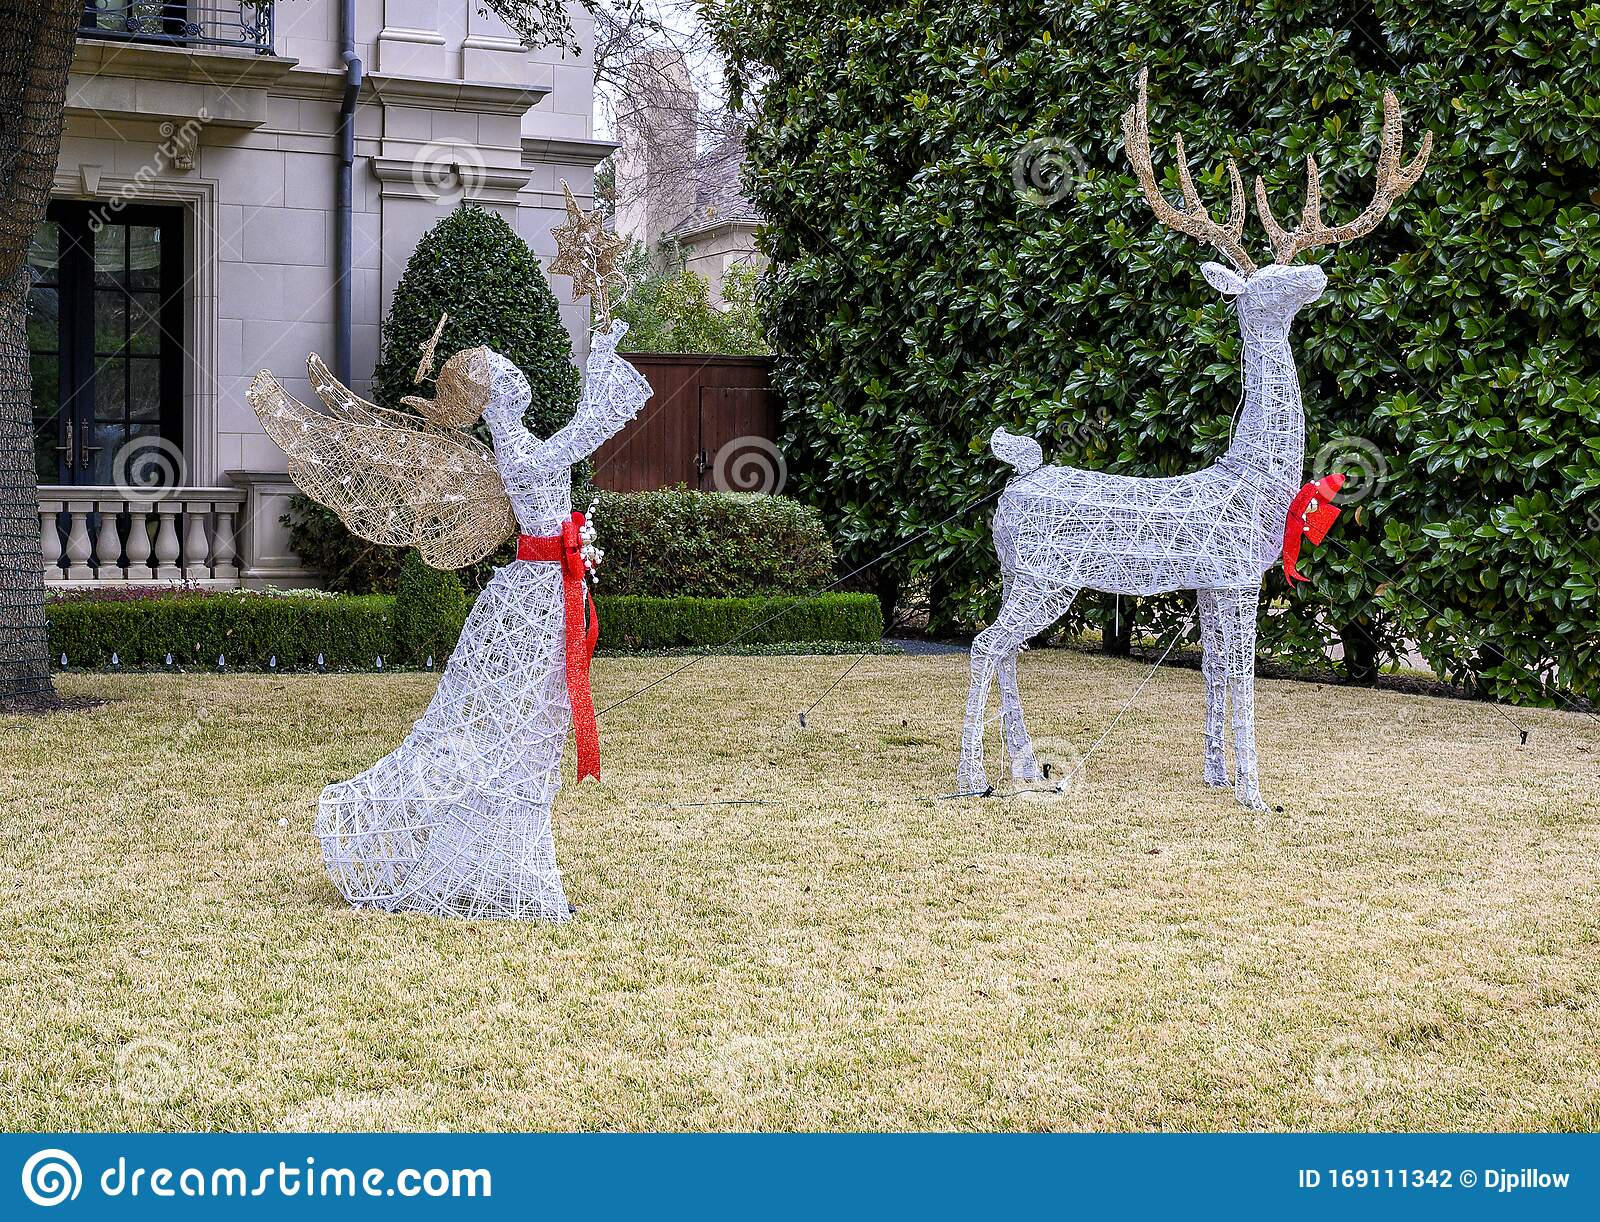 Wire White Angel And Reindeer Christmas Decorations In The